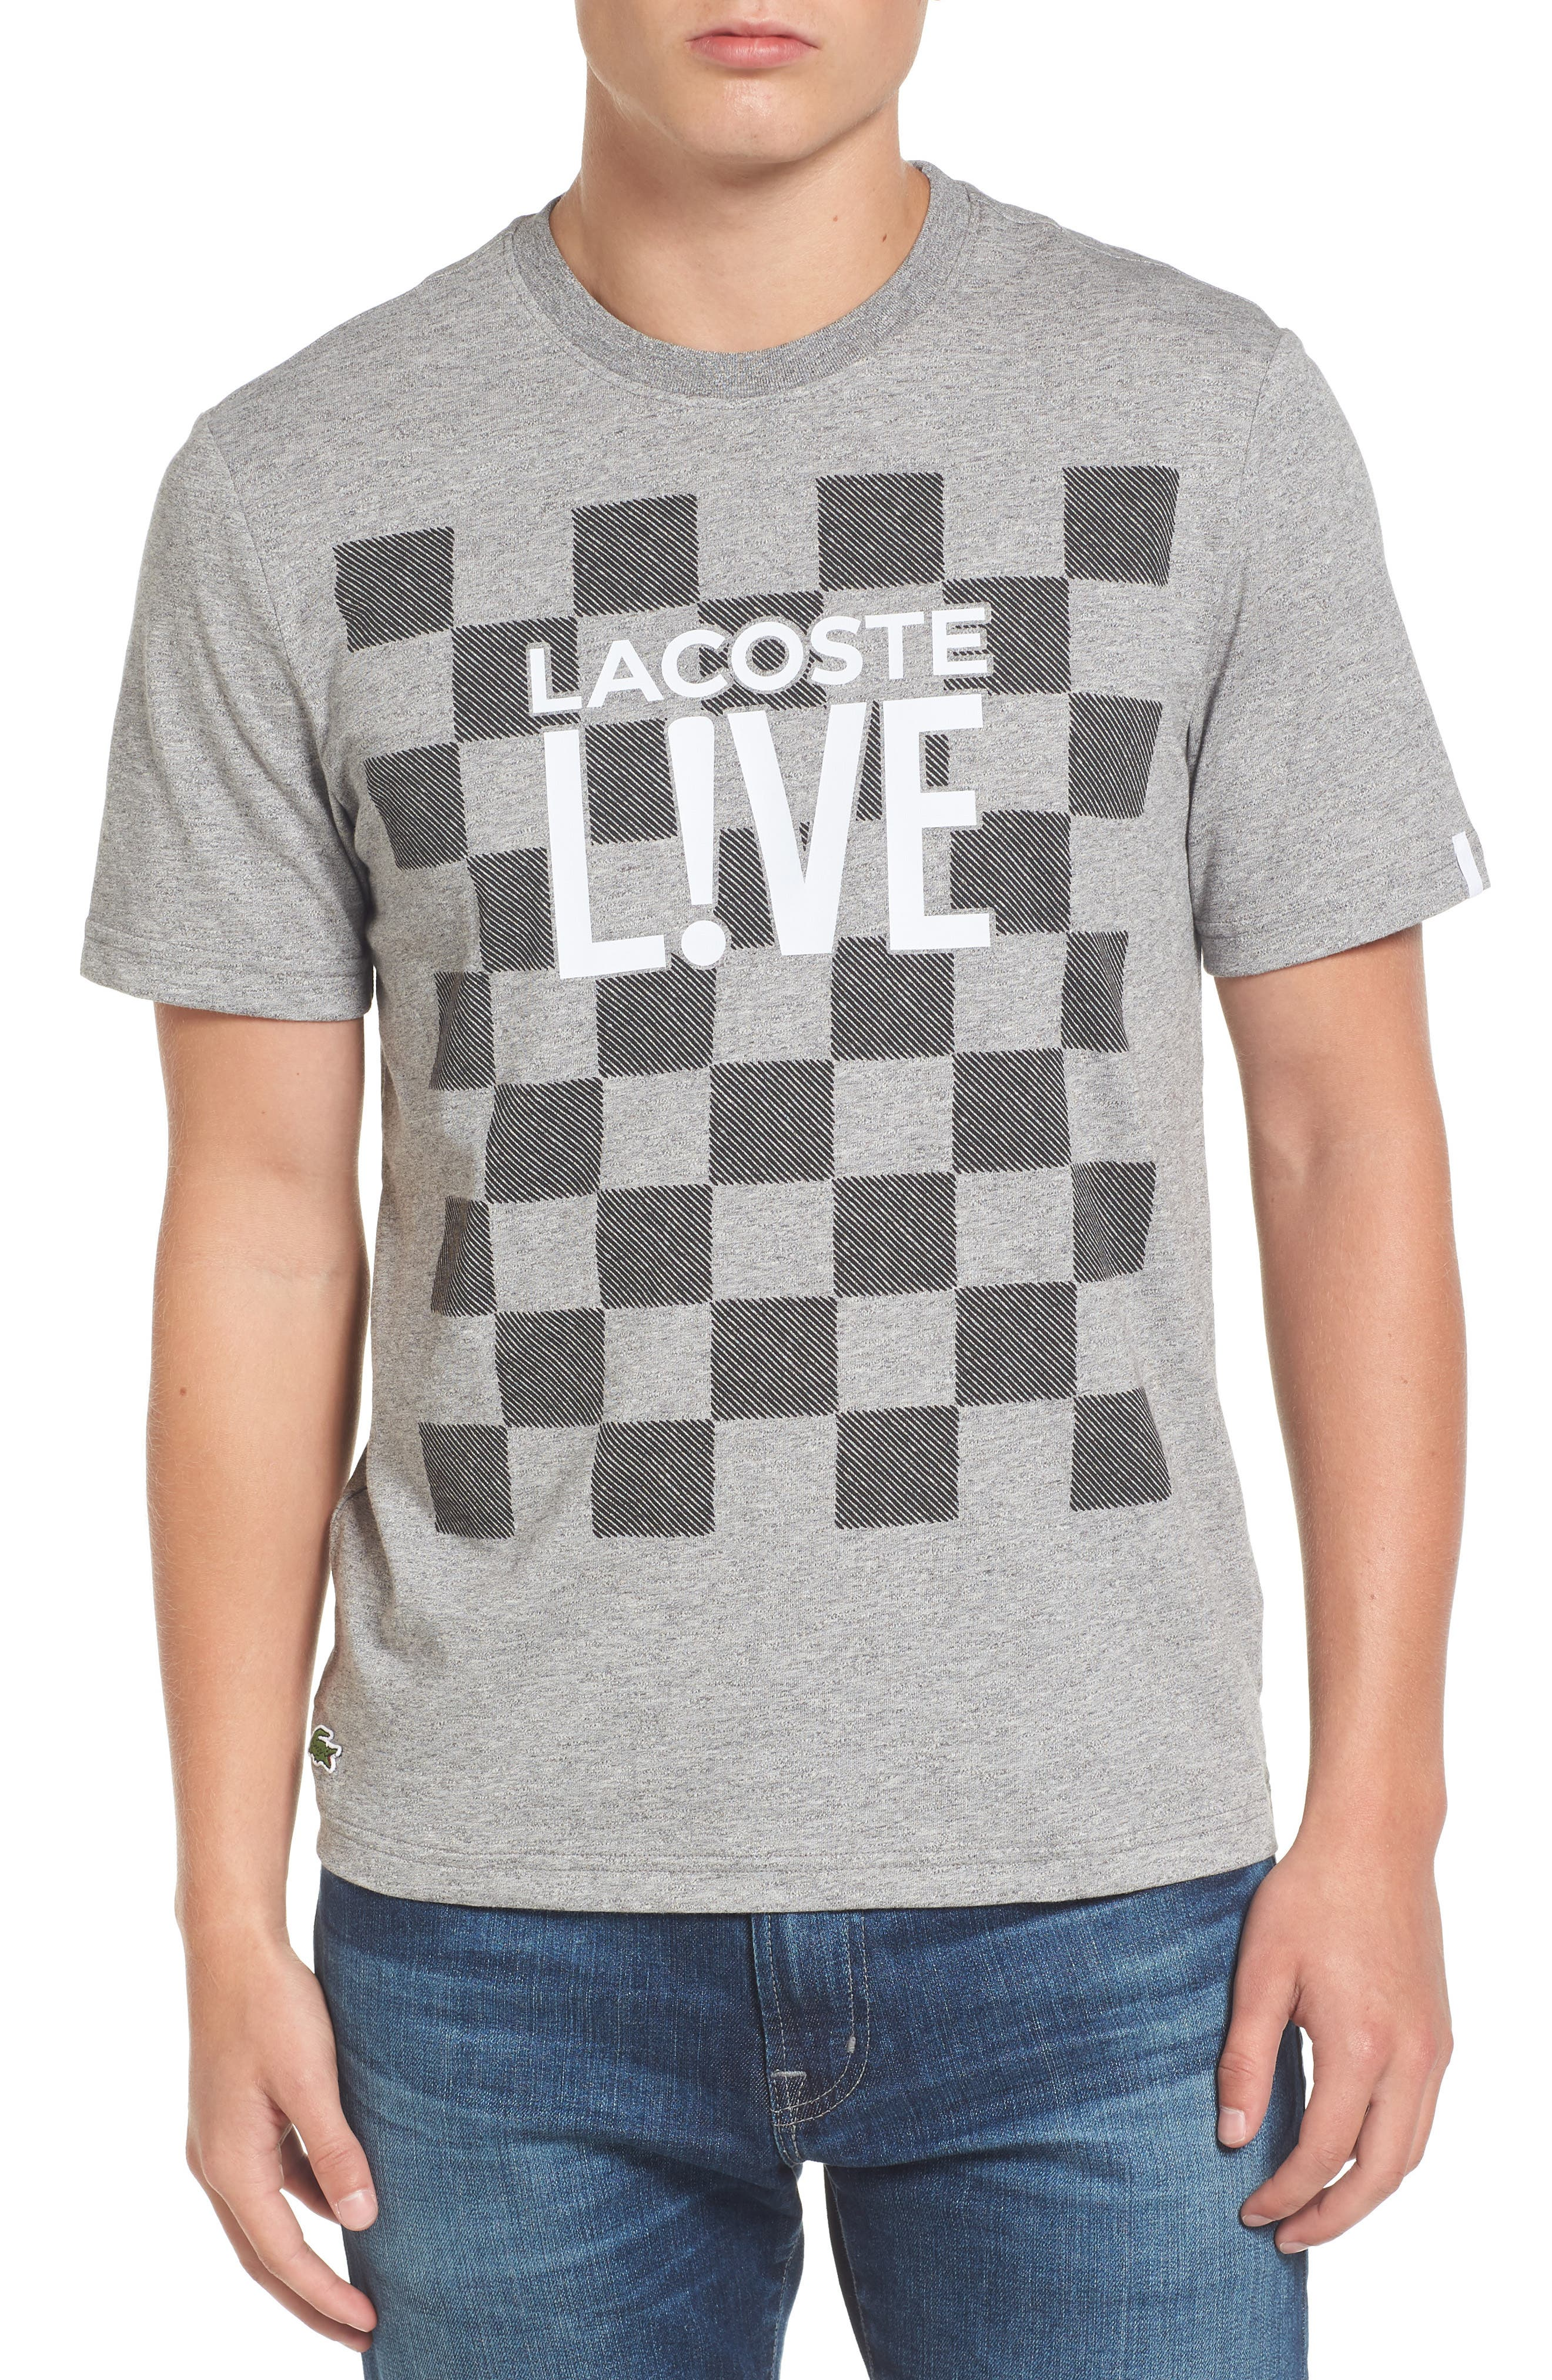 Alternate Image 1 Selected - Lacoste Check Graphic T-Shirt